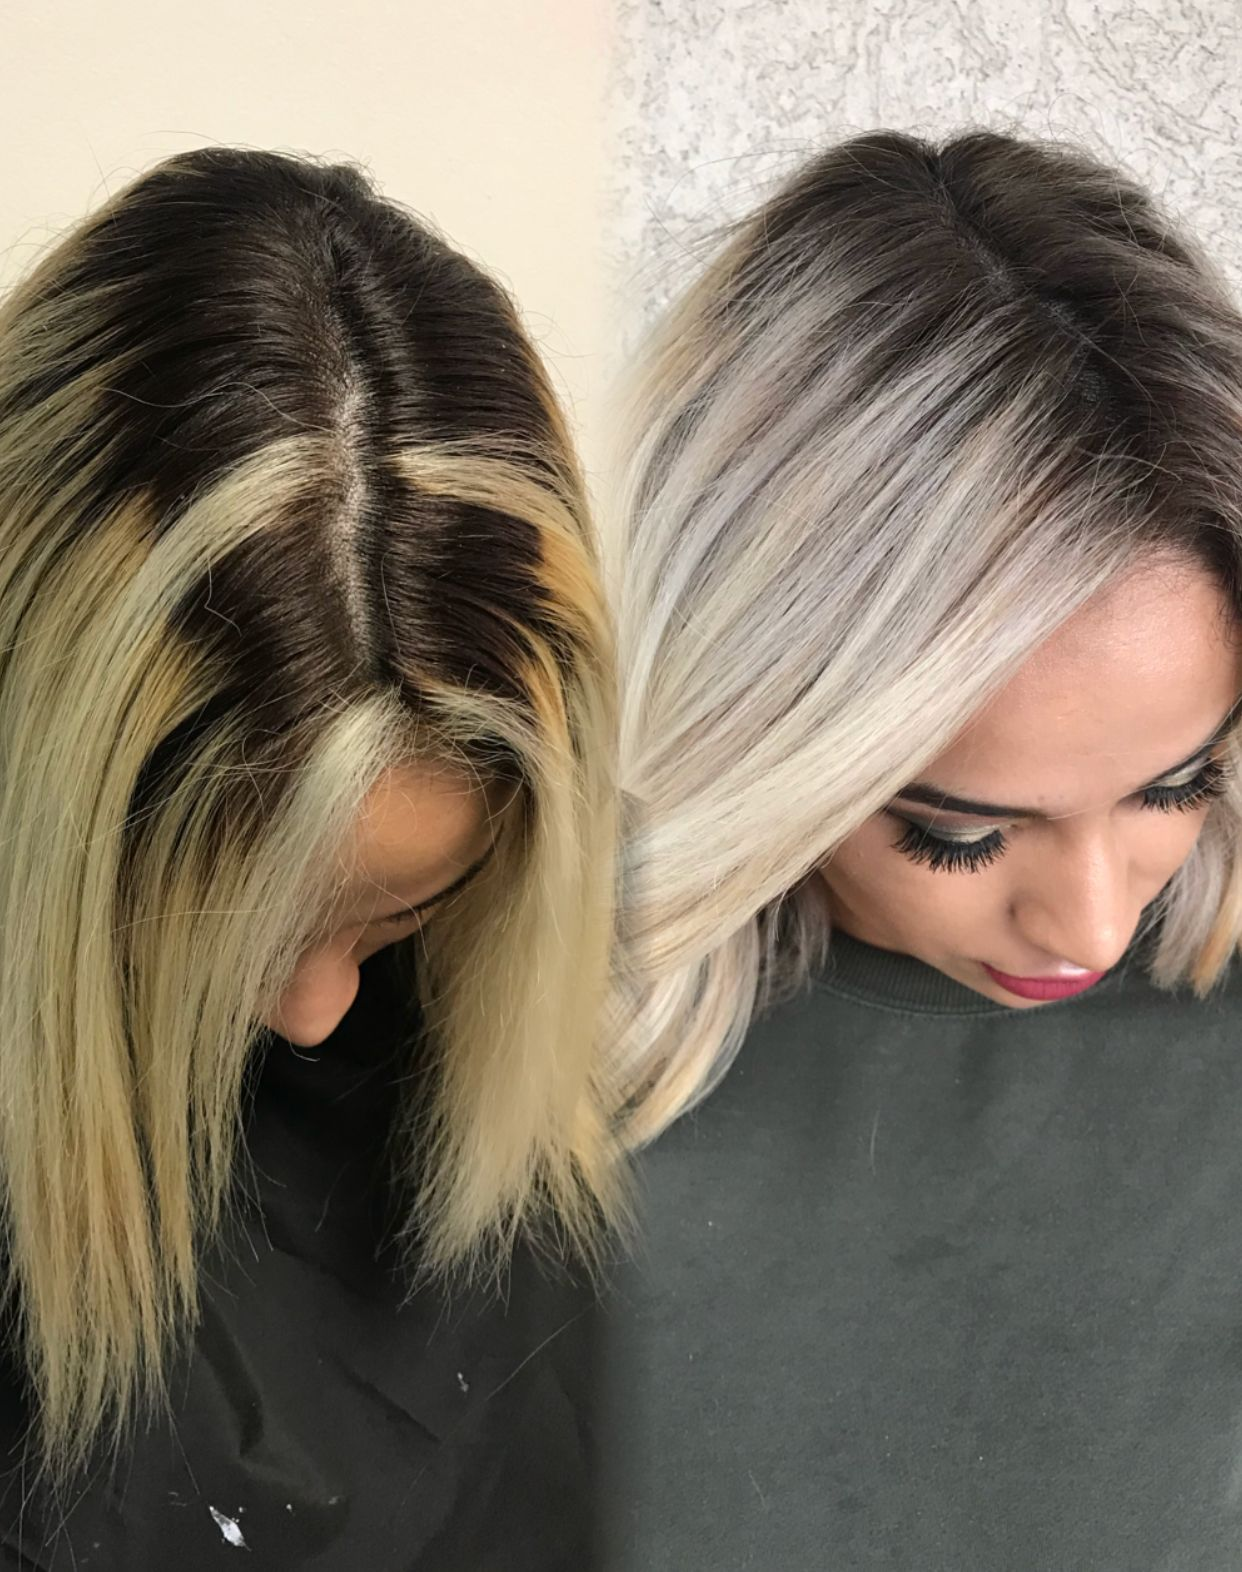 Hair Transformation Beforeandafter Colorcorrection Ombrehair Highombre Rootedblonde Haircolor Hairs Ice Blonde Hair Balayage Hair Dark Roots Blonde Hair